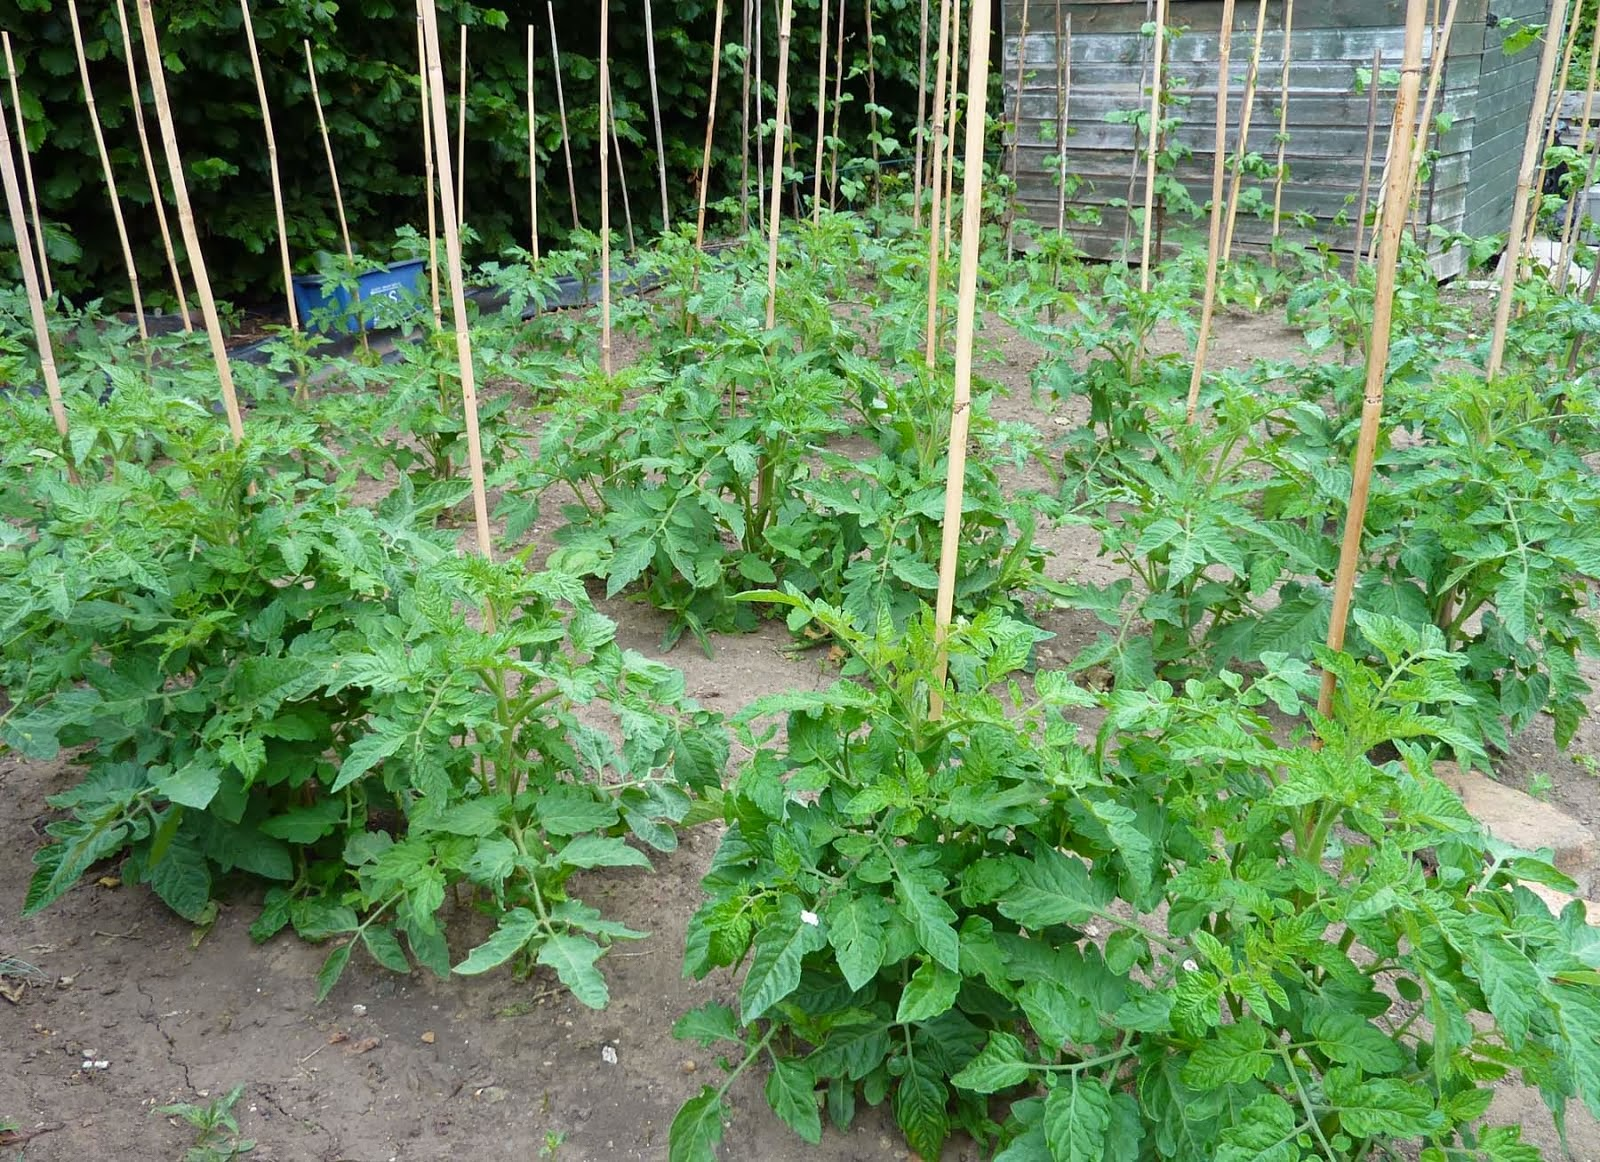 Plant your tomato as deeply as possible